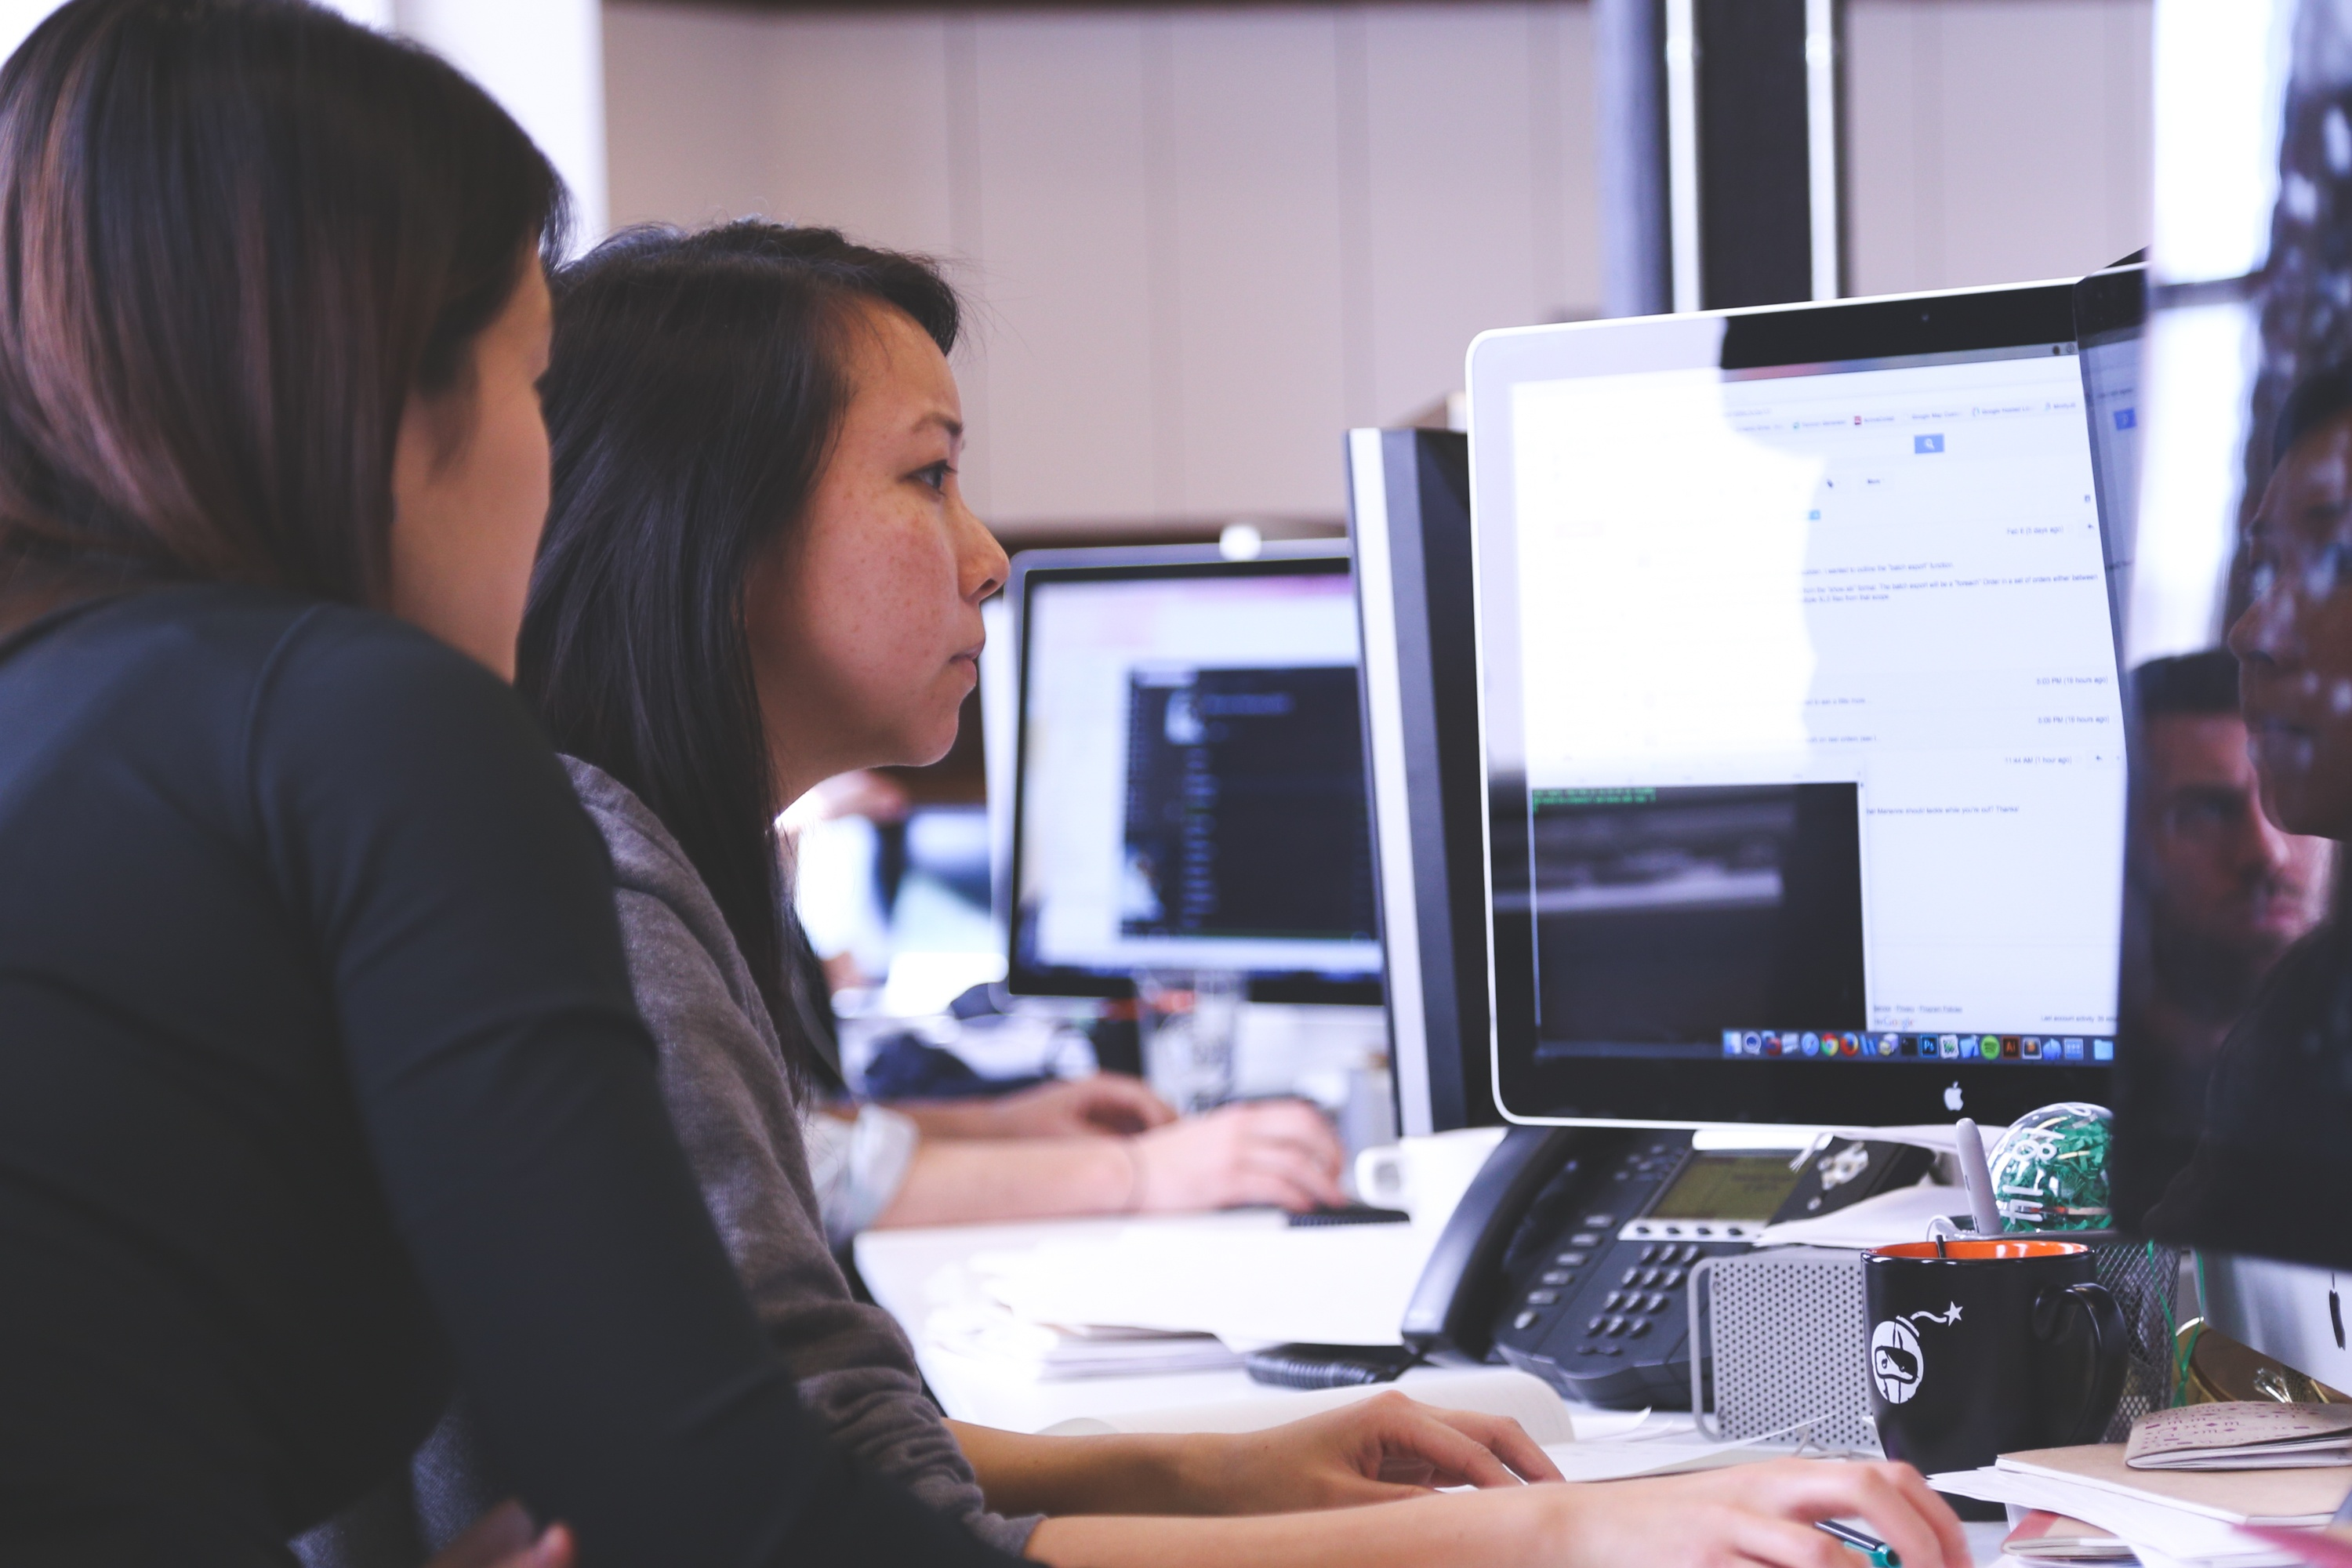 Image of women on a computer